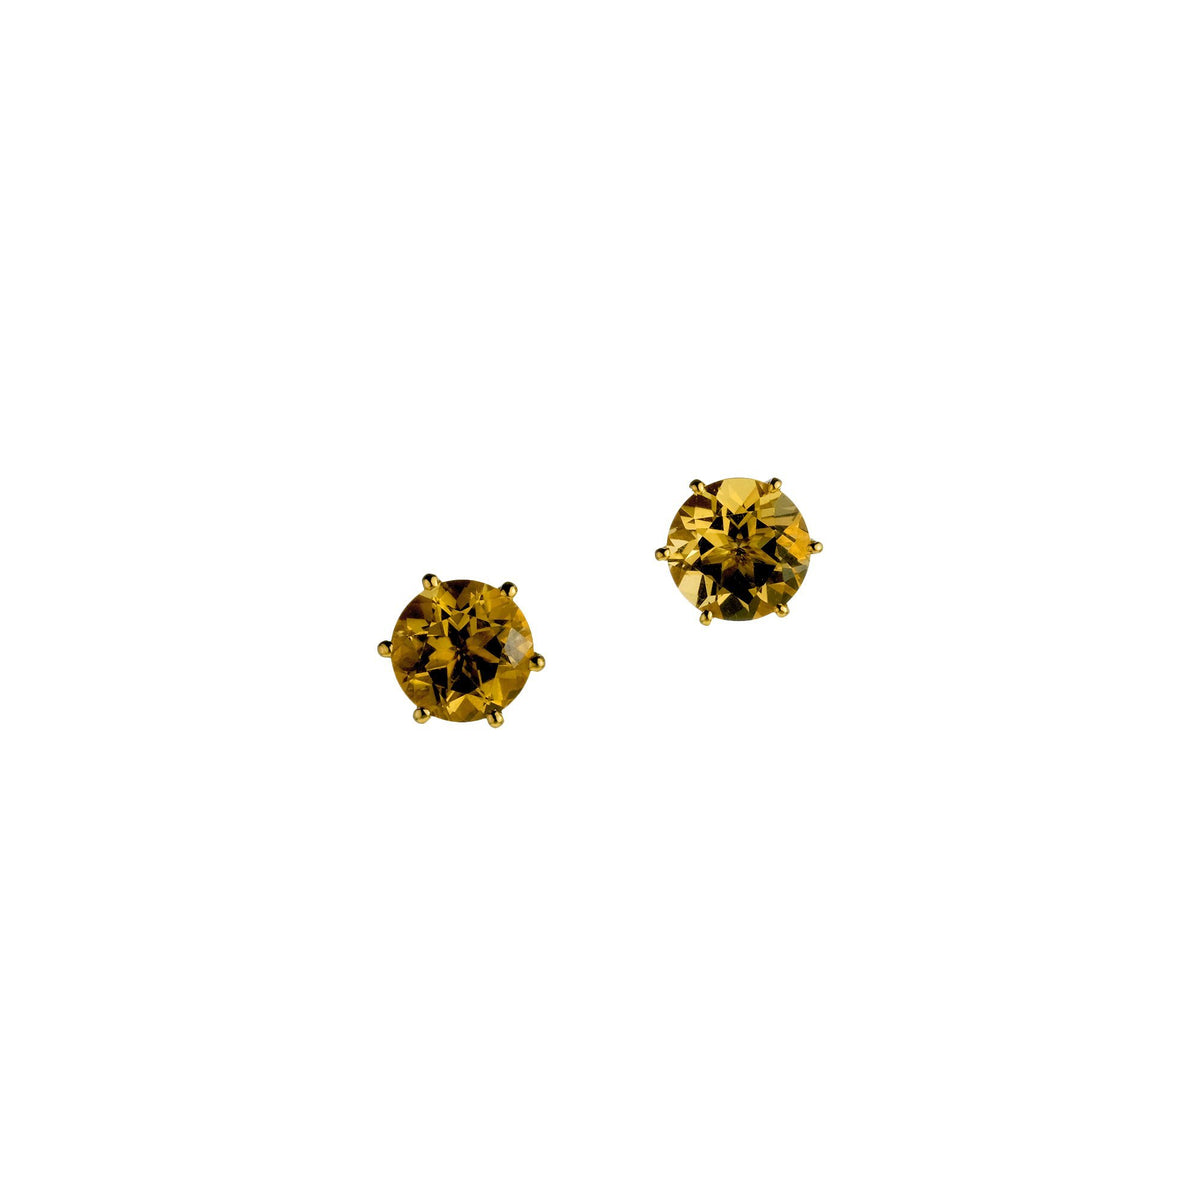 Golden Citrine Studs, 3.05 carats